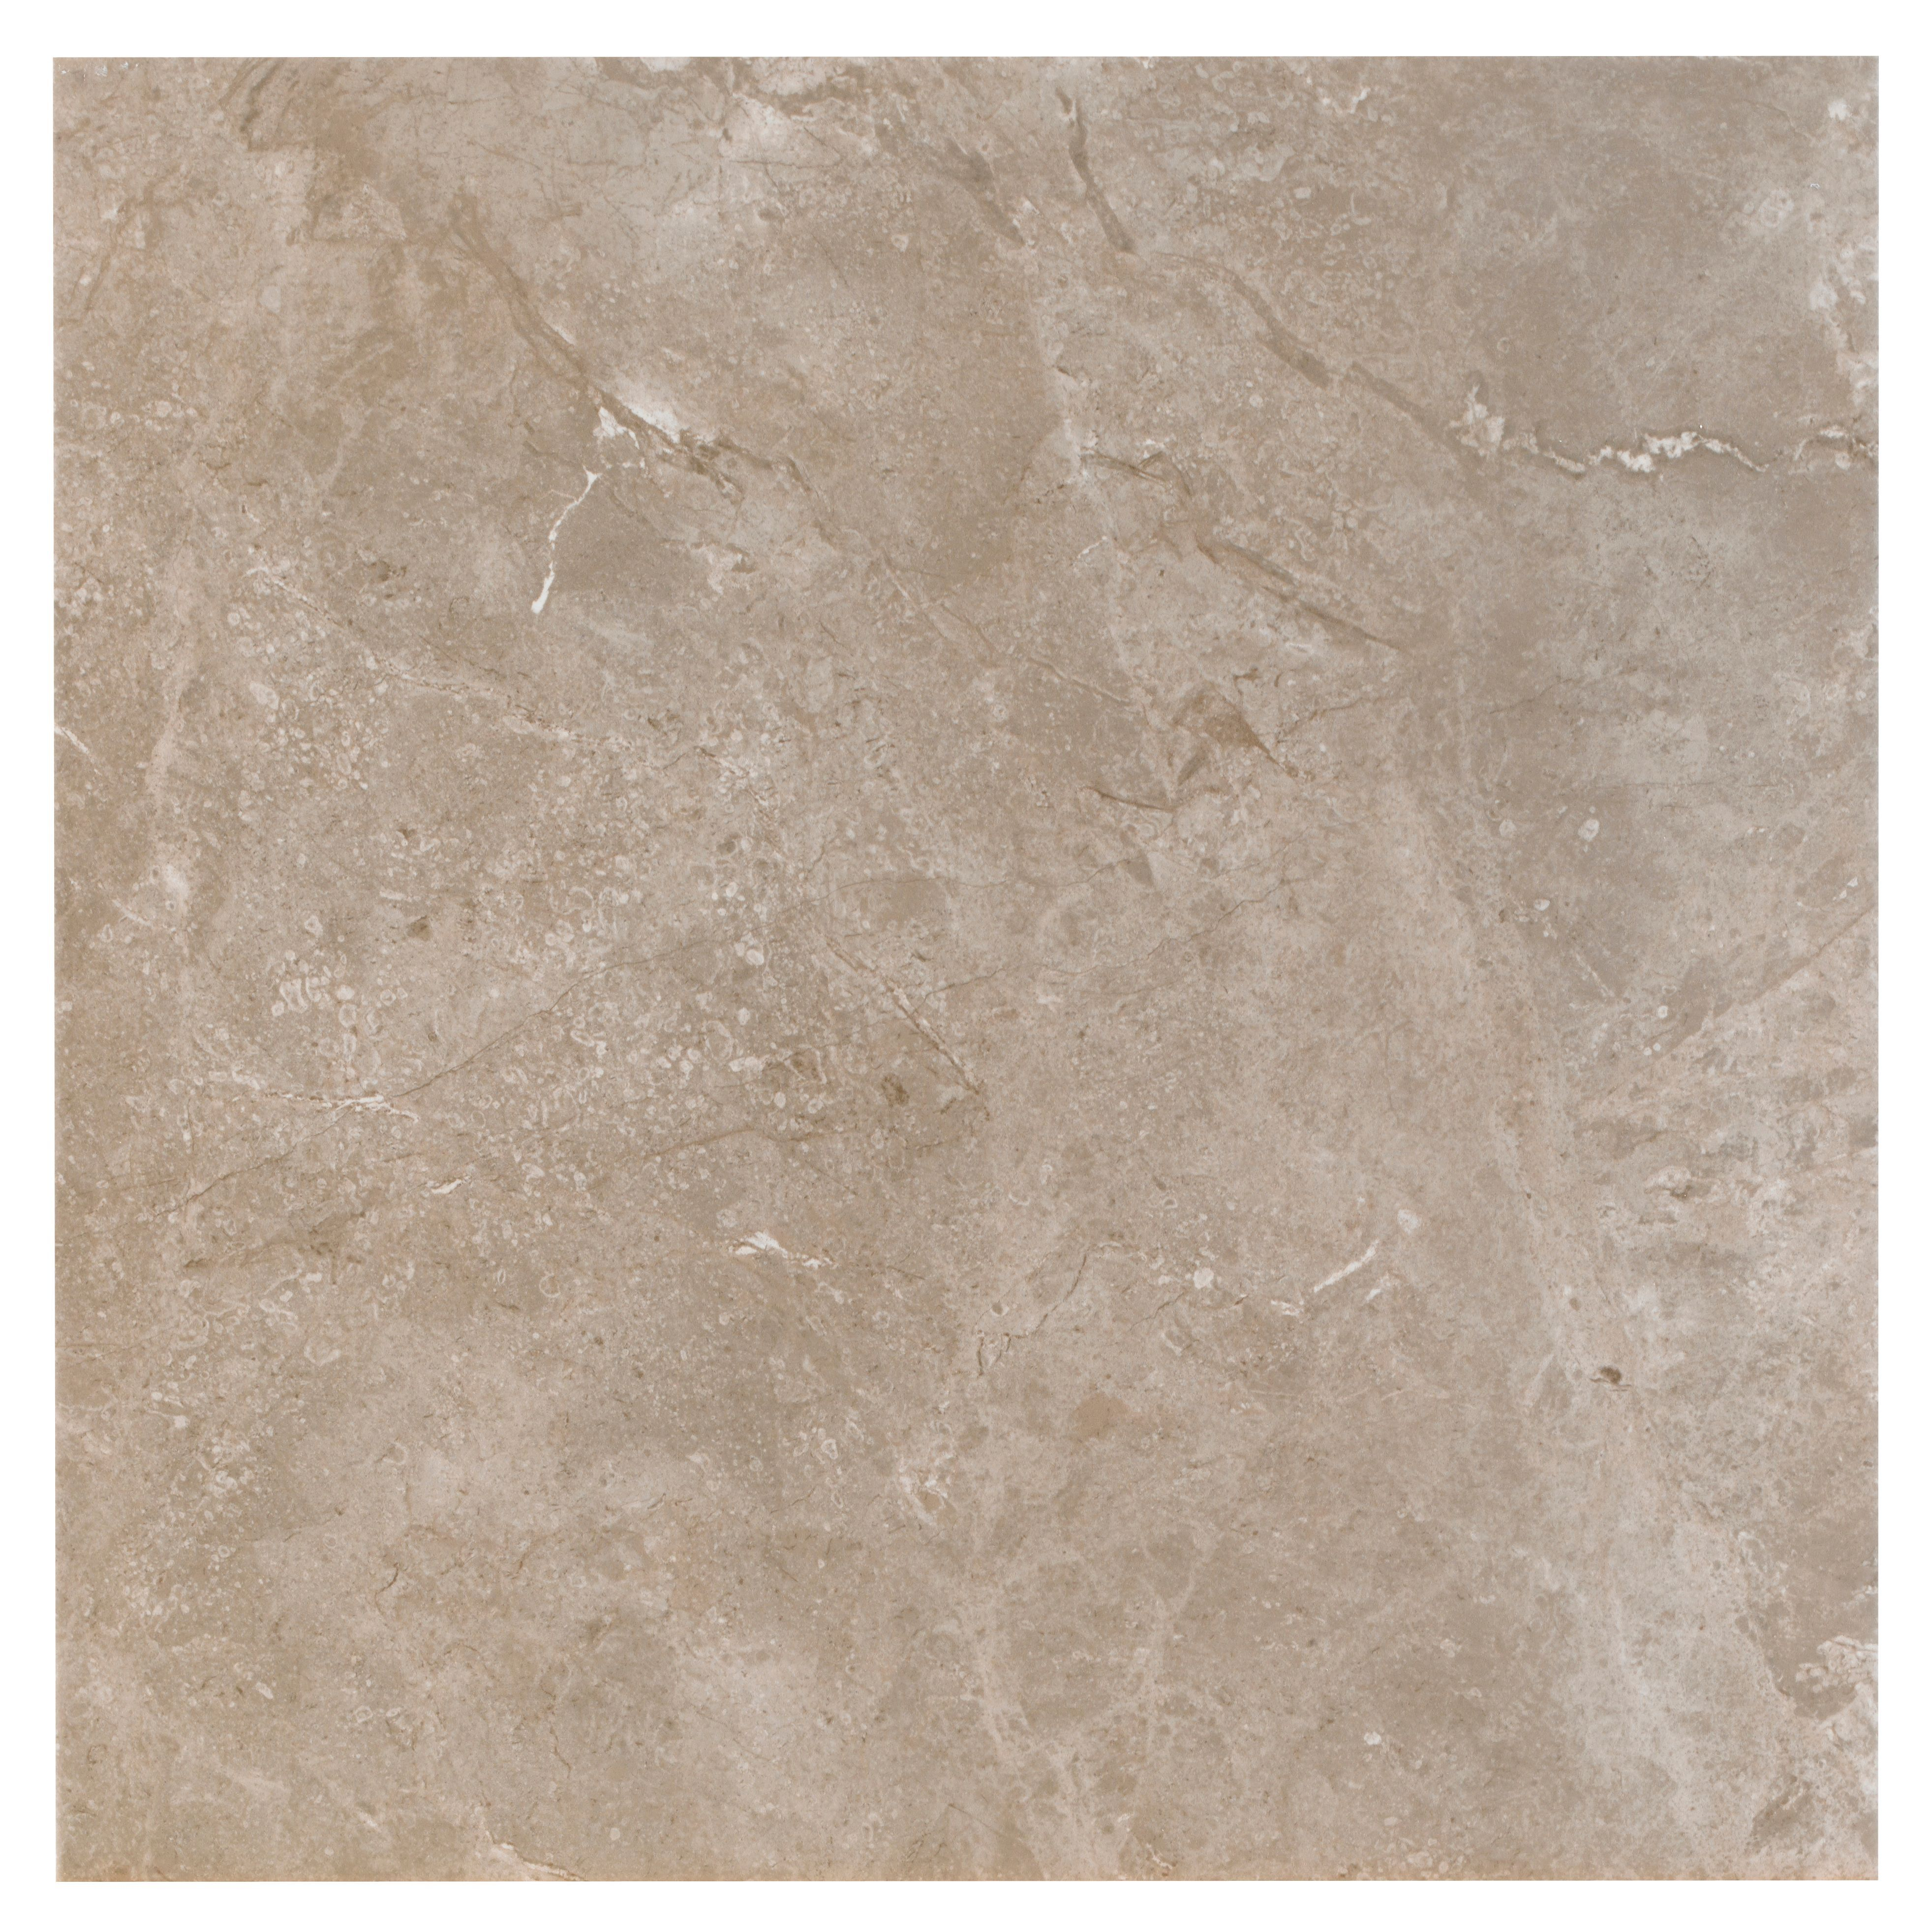 Single Piece Natural Stone Effect Travertine Wall Tile L: Origin Pebble Linear Travertine Ceramic Wall Tile, Pack Of